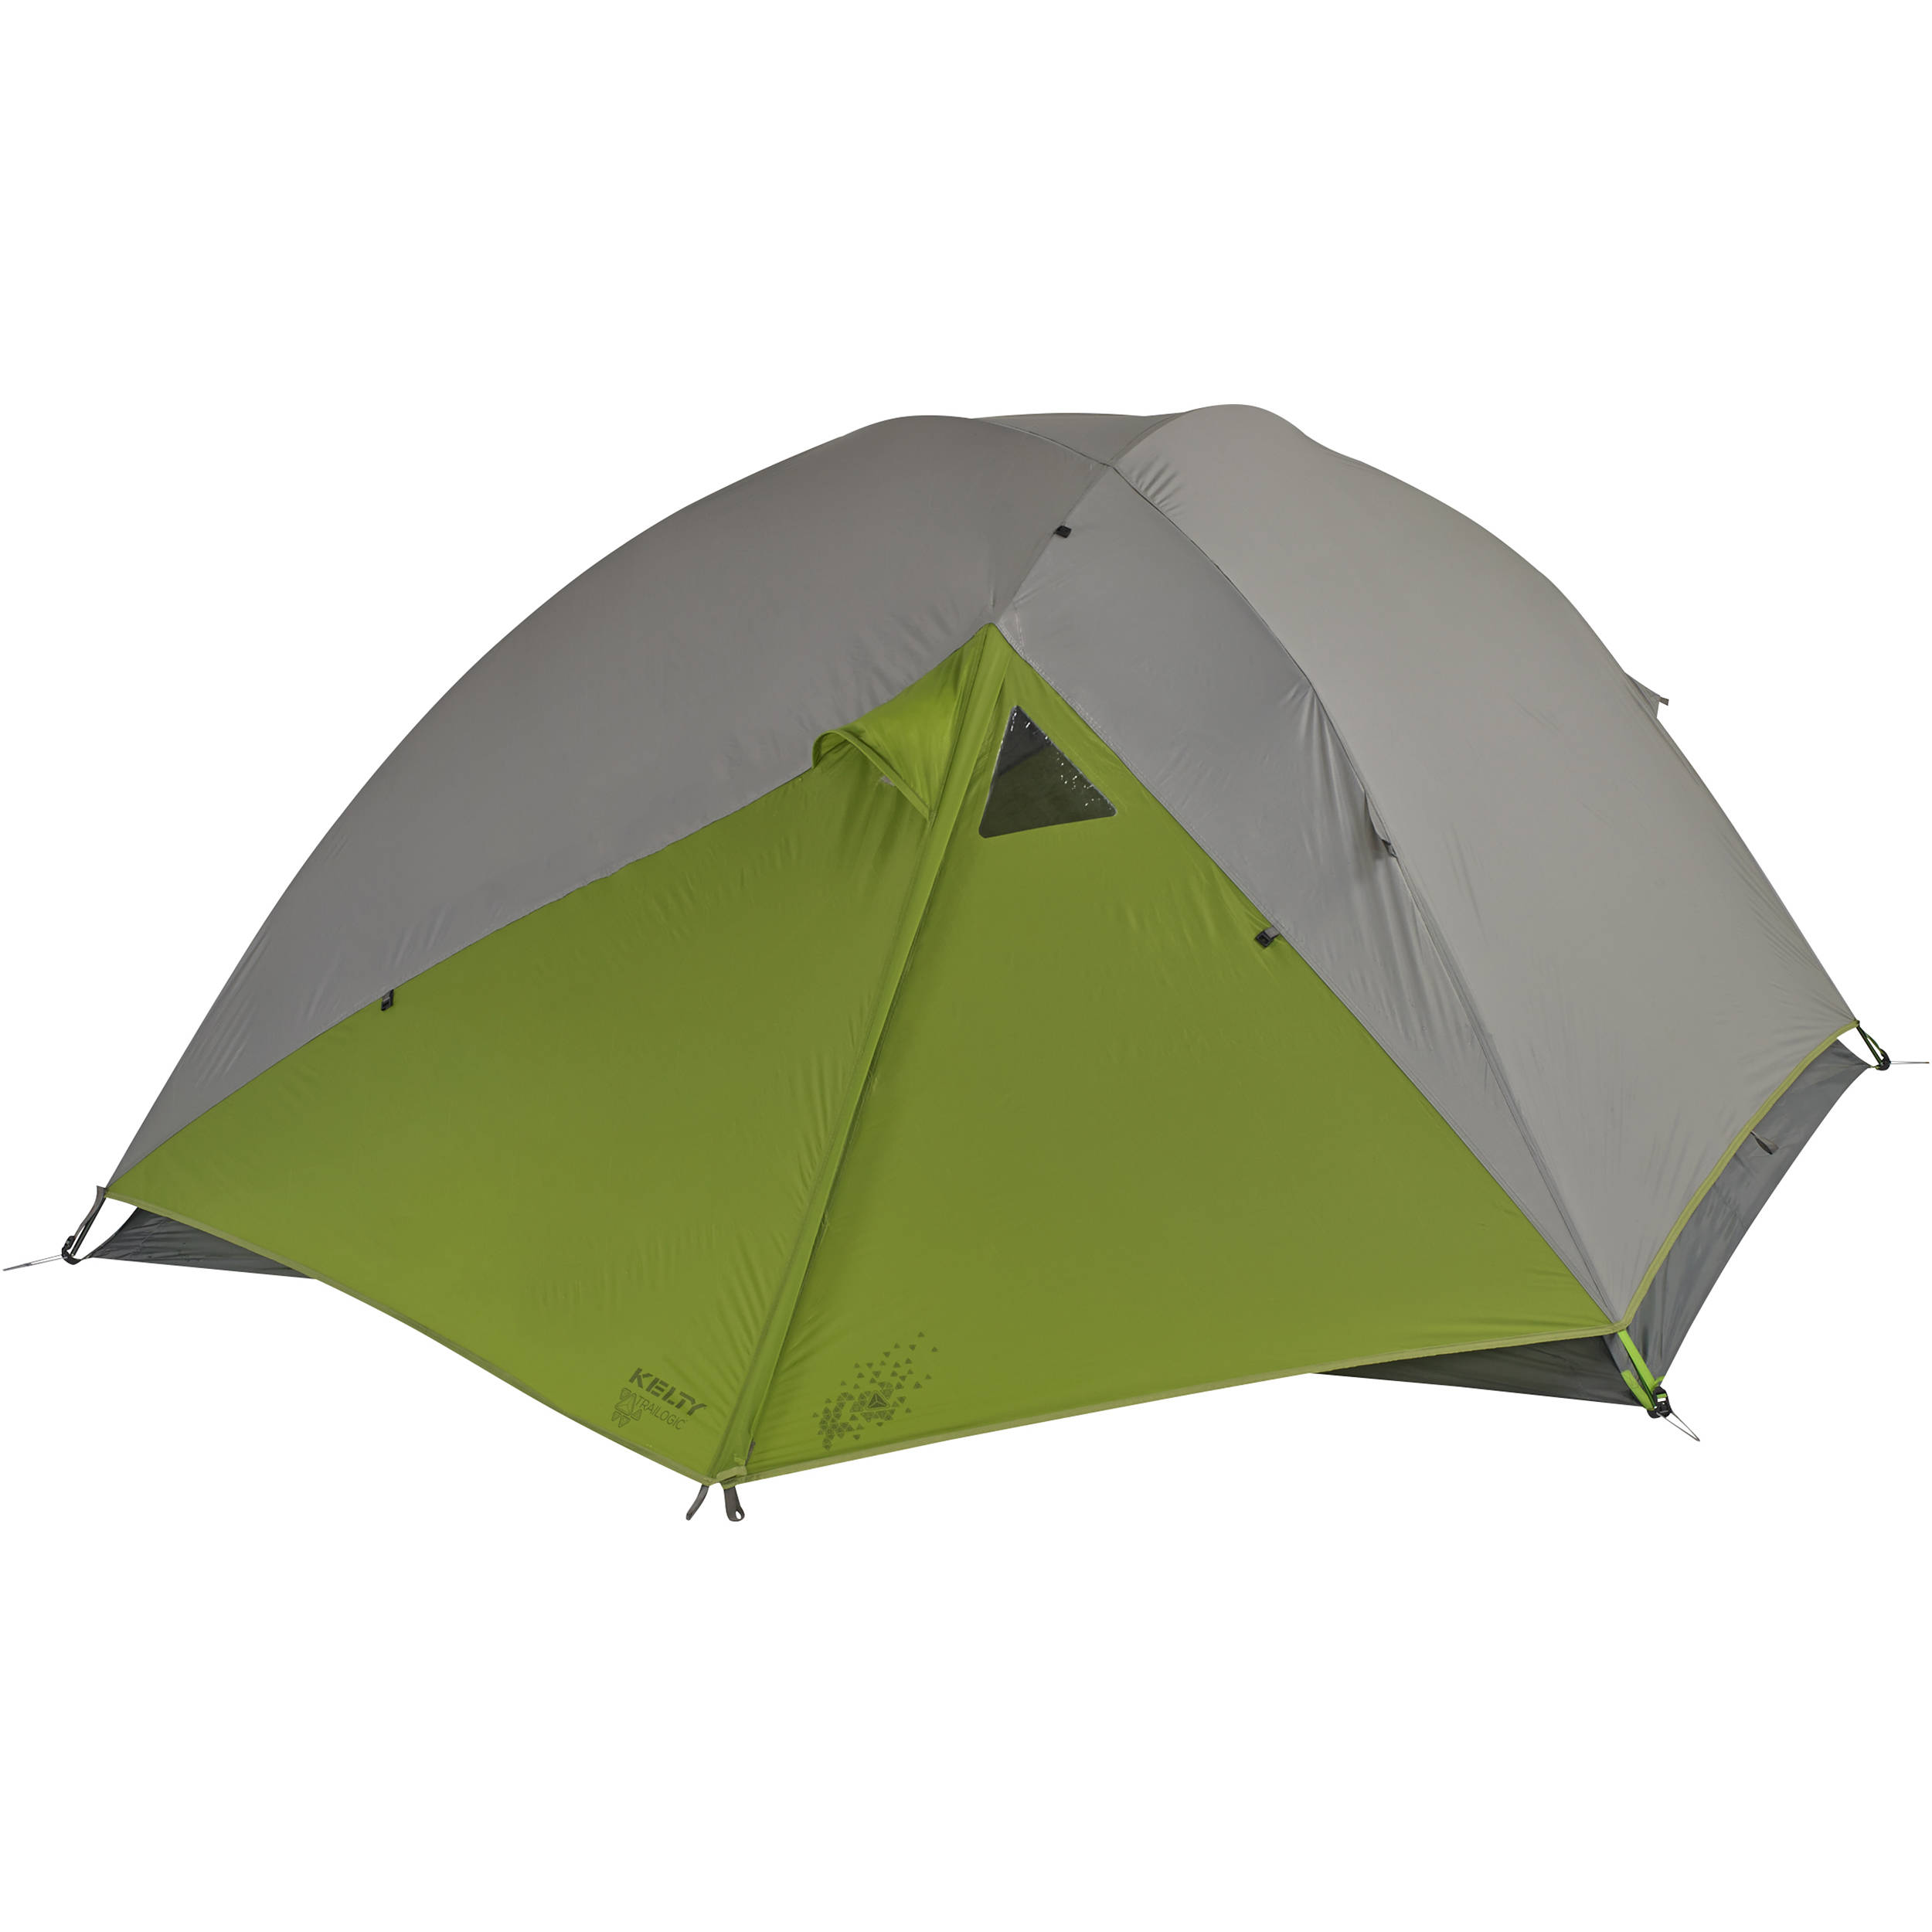 Kelty TN4 Tent (4-Person)  sc 1 st  Bu0026H & Kelty TN4 Tent (4-Person) 40816616 Bu0026H Photo Video